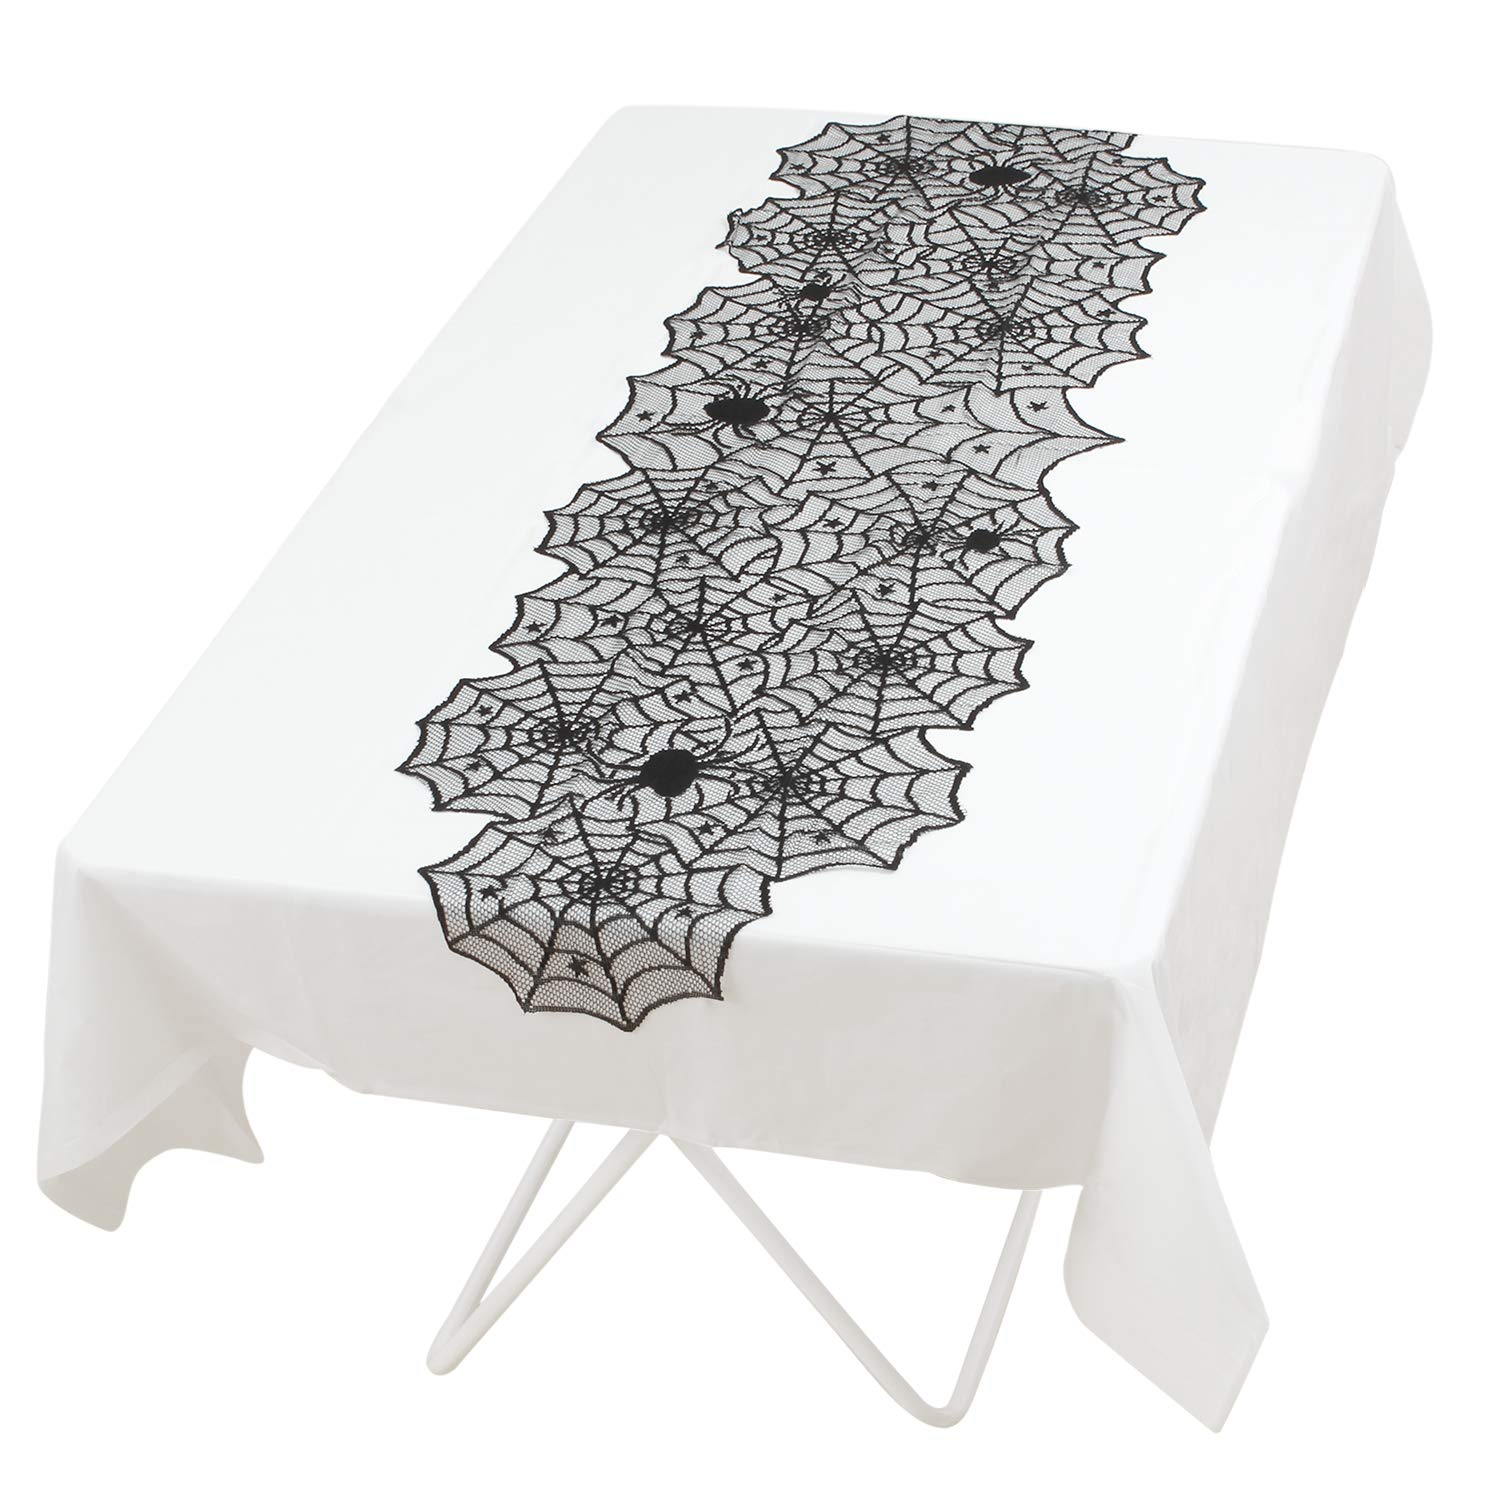 Elcoho 2 Pieces Black Lace Table Runner Set 18×72 Inch Black Spider Web Halloween Lace Table Cover for Halloween Table Decorations Including 1 Black Overlay 1 White Liner